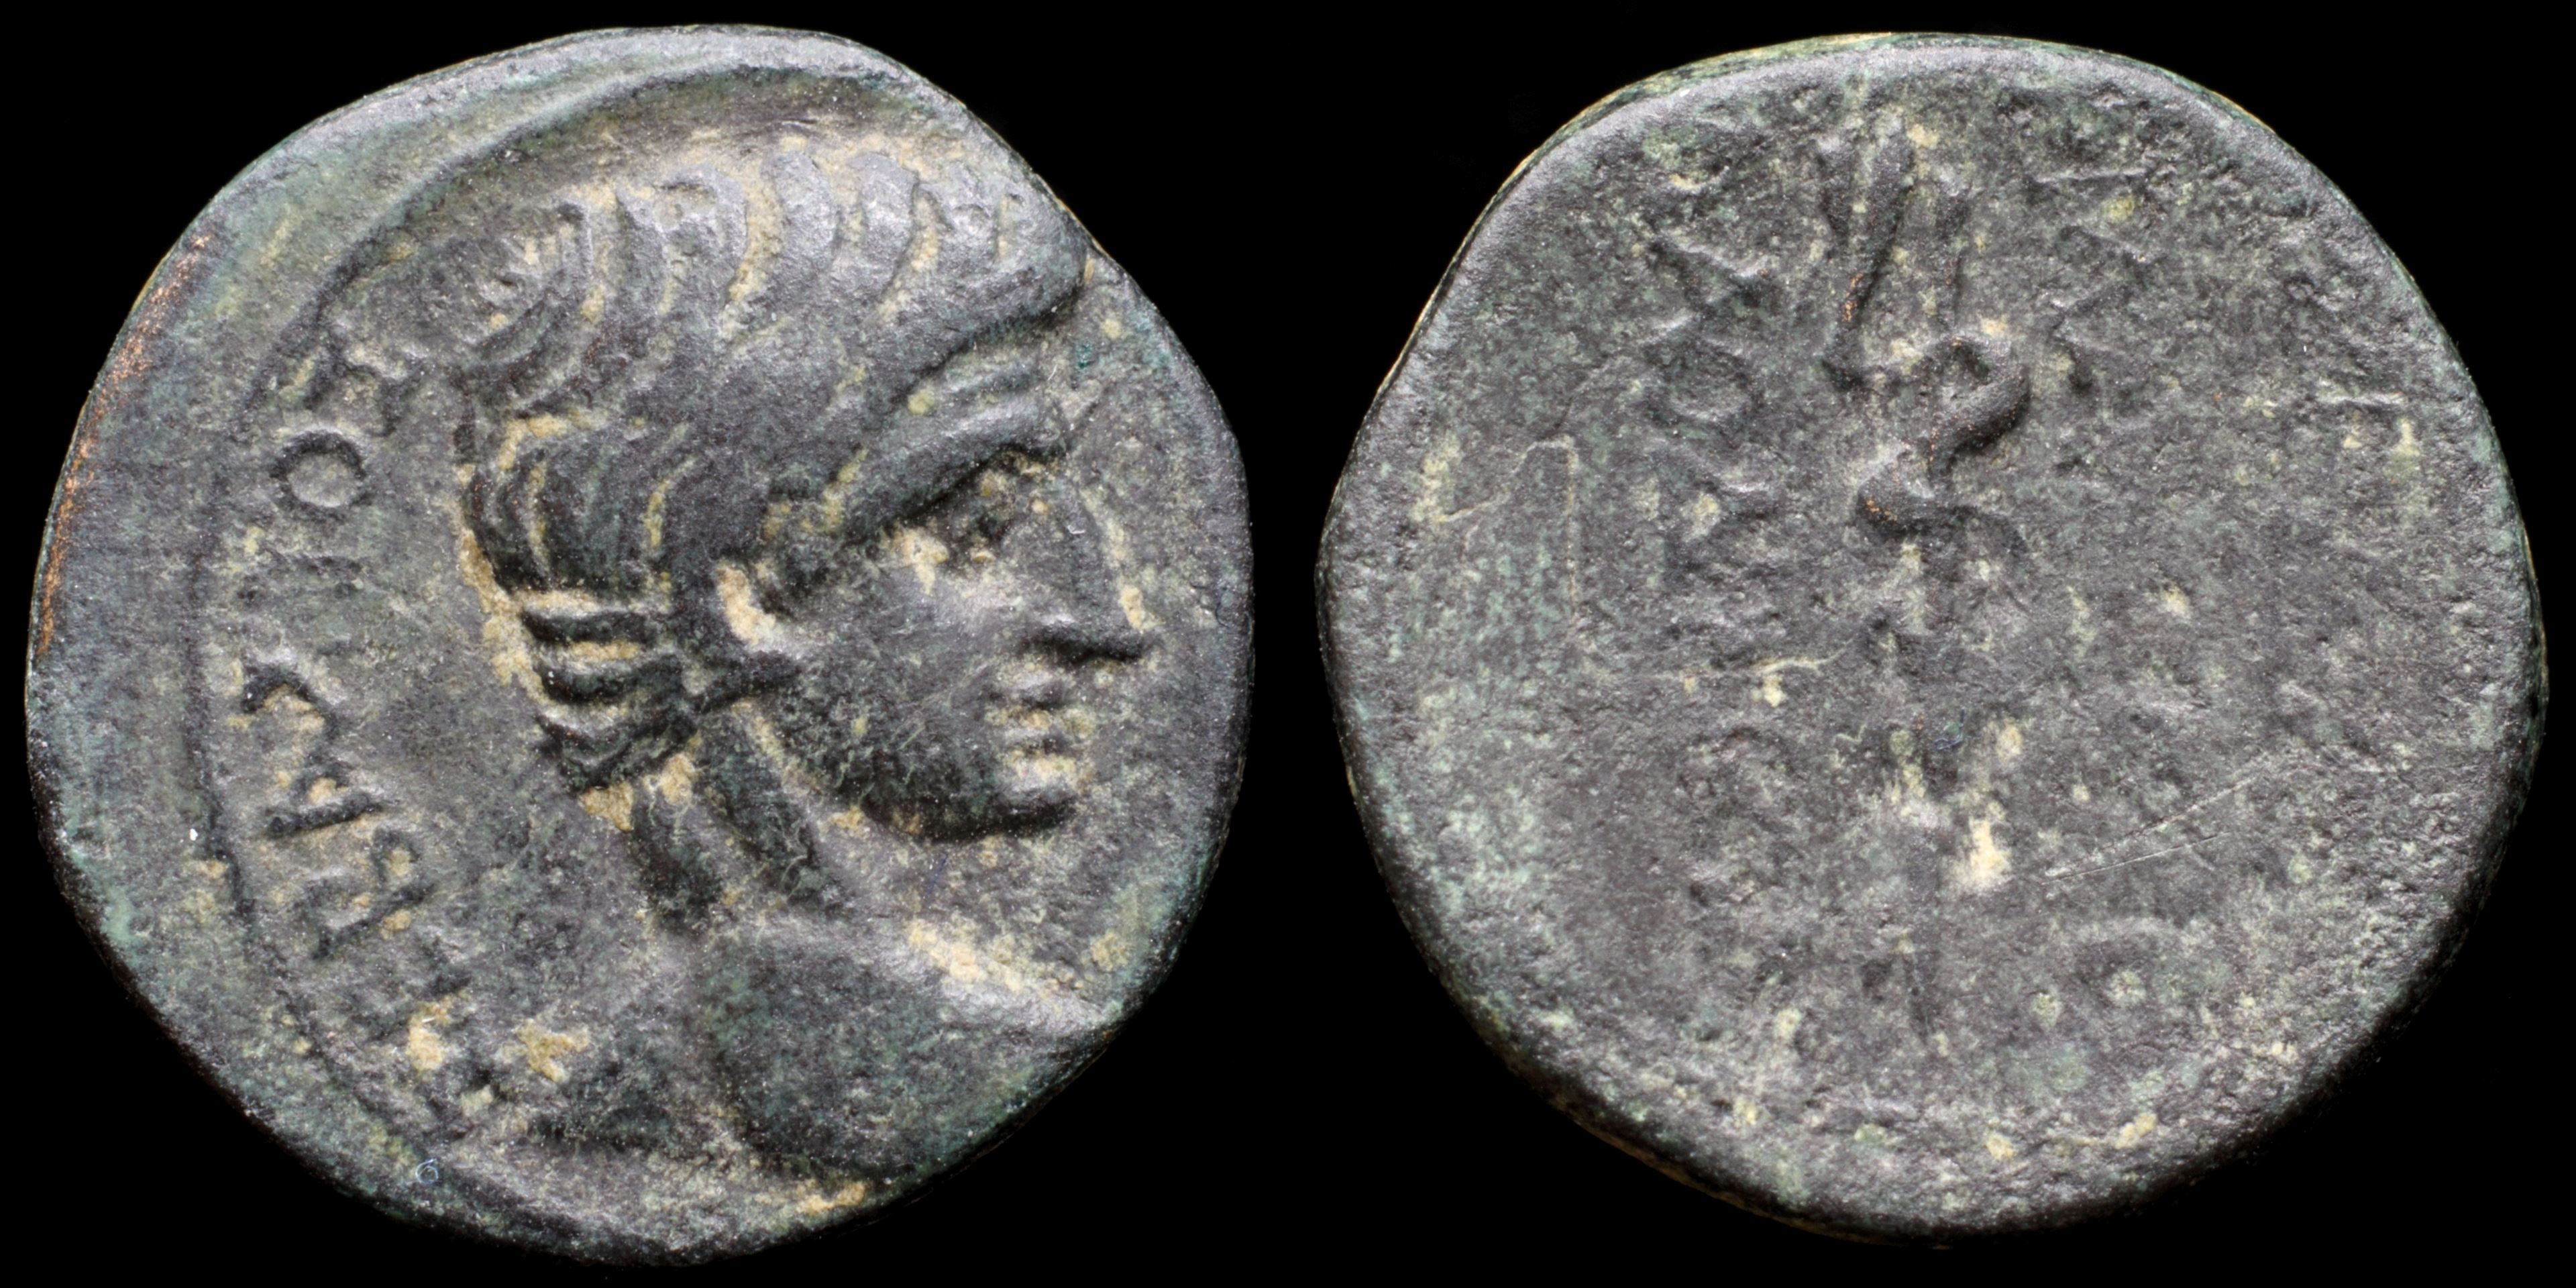 /Files/Images/Coinsite/CoinDB/611_Augustus_Laodicea_Phrygia.JPG